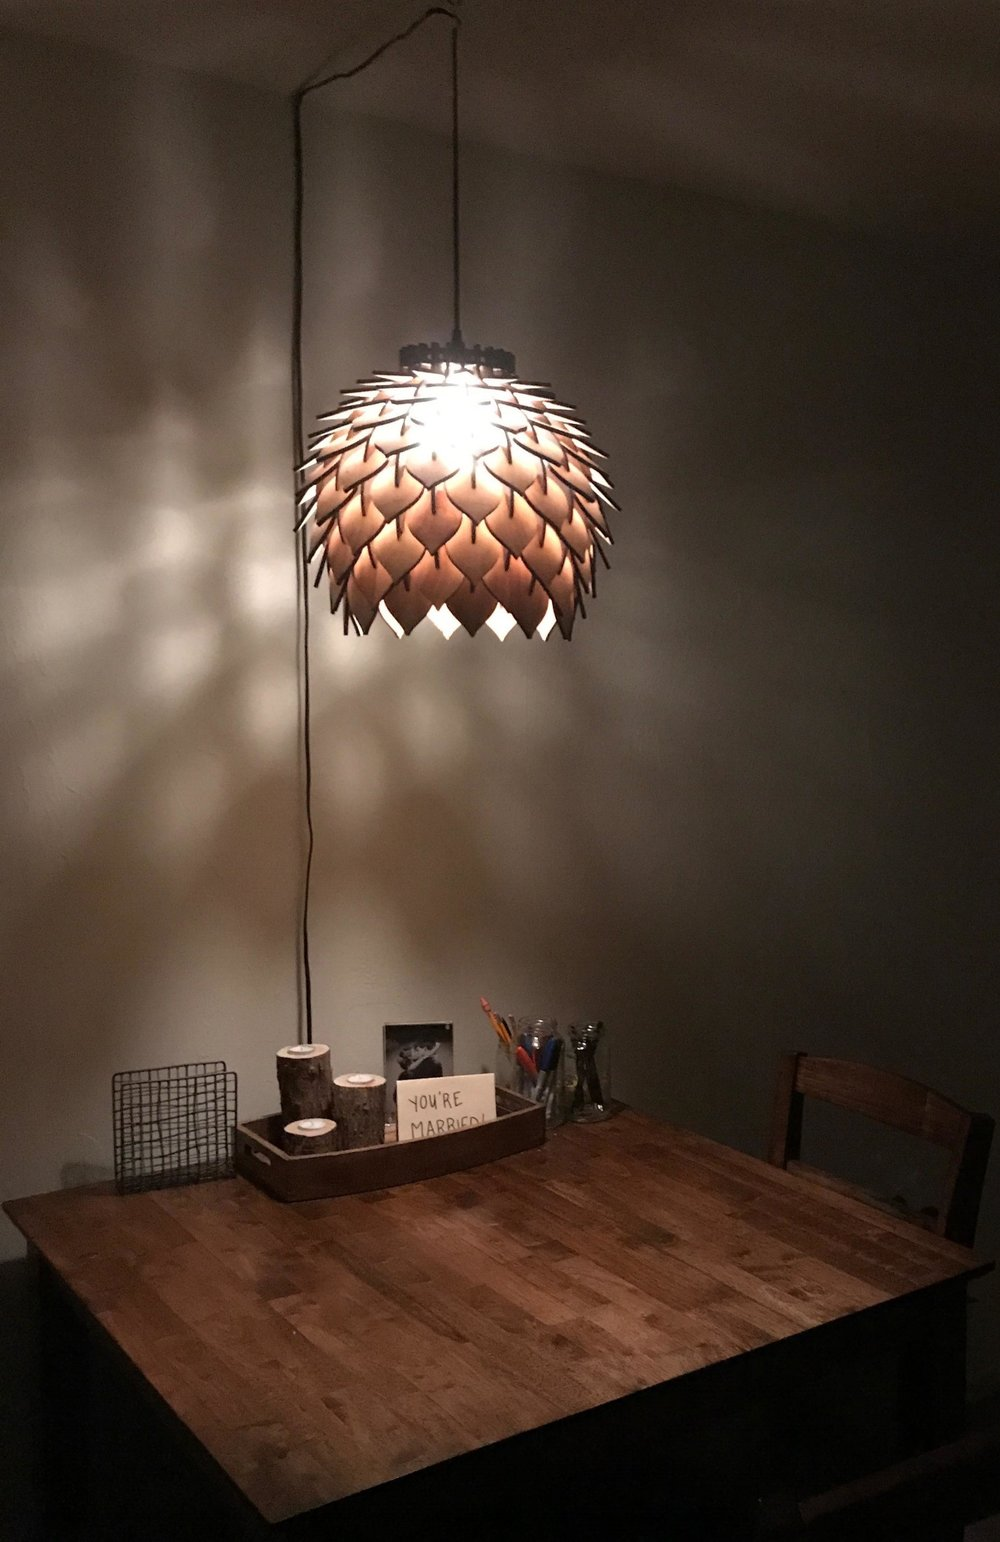 spore lamp 7 – handmade laser cut parametric postmodern interior light geometric wooden pendant lamp terraform design.jpg